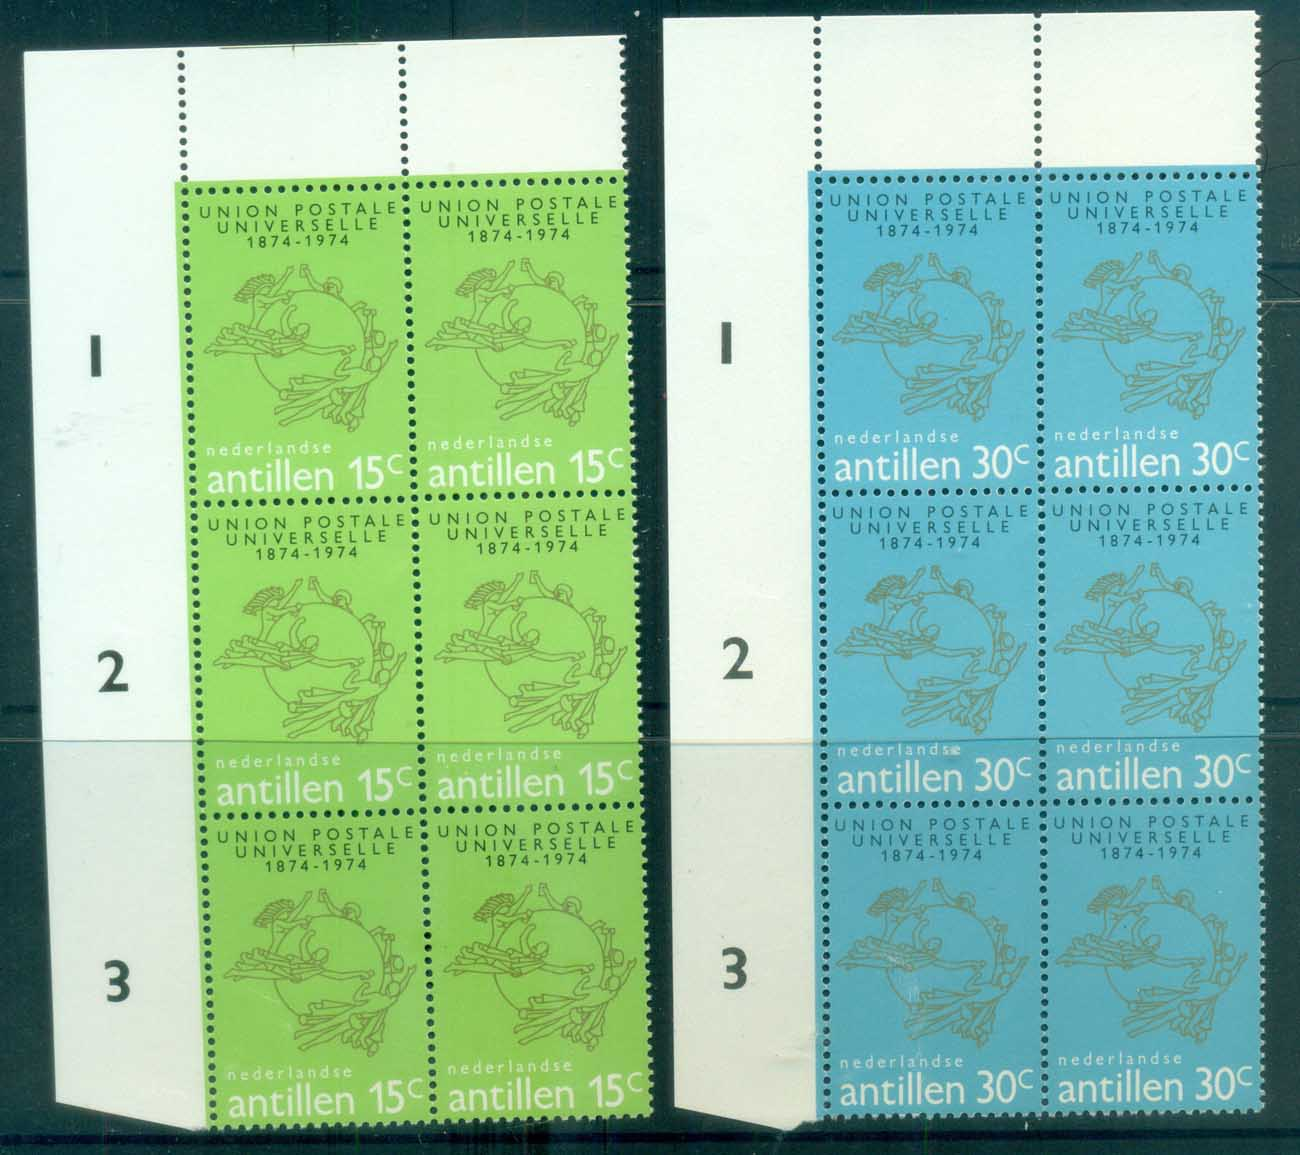 Netherlands Antilles 1974 Centenary of UPU Blk 6 MUH lot76377